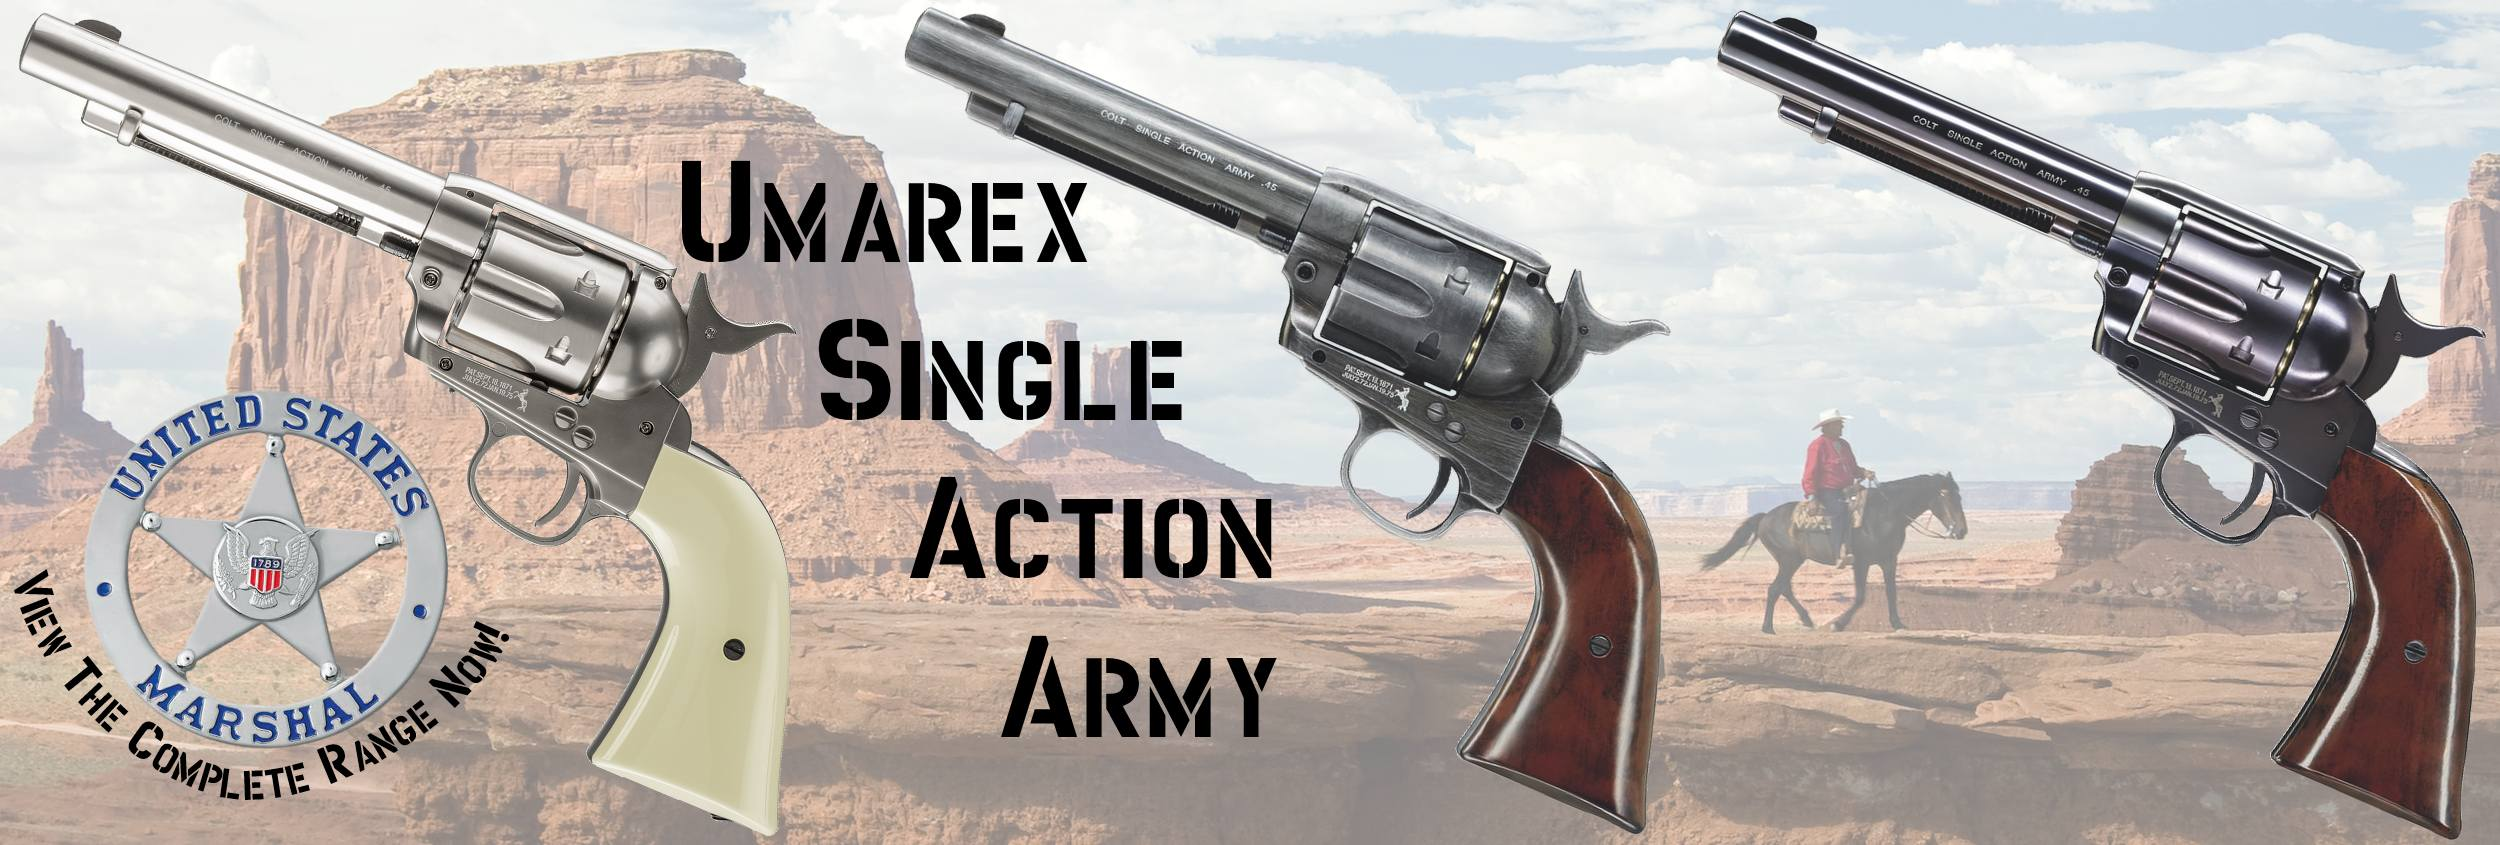 Umarex Colt Peacemaker Single Action Army Co2 Pistols